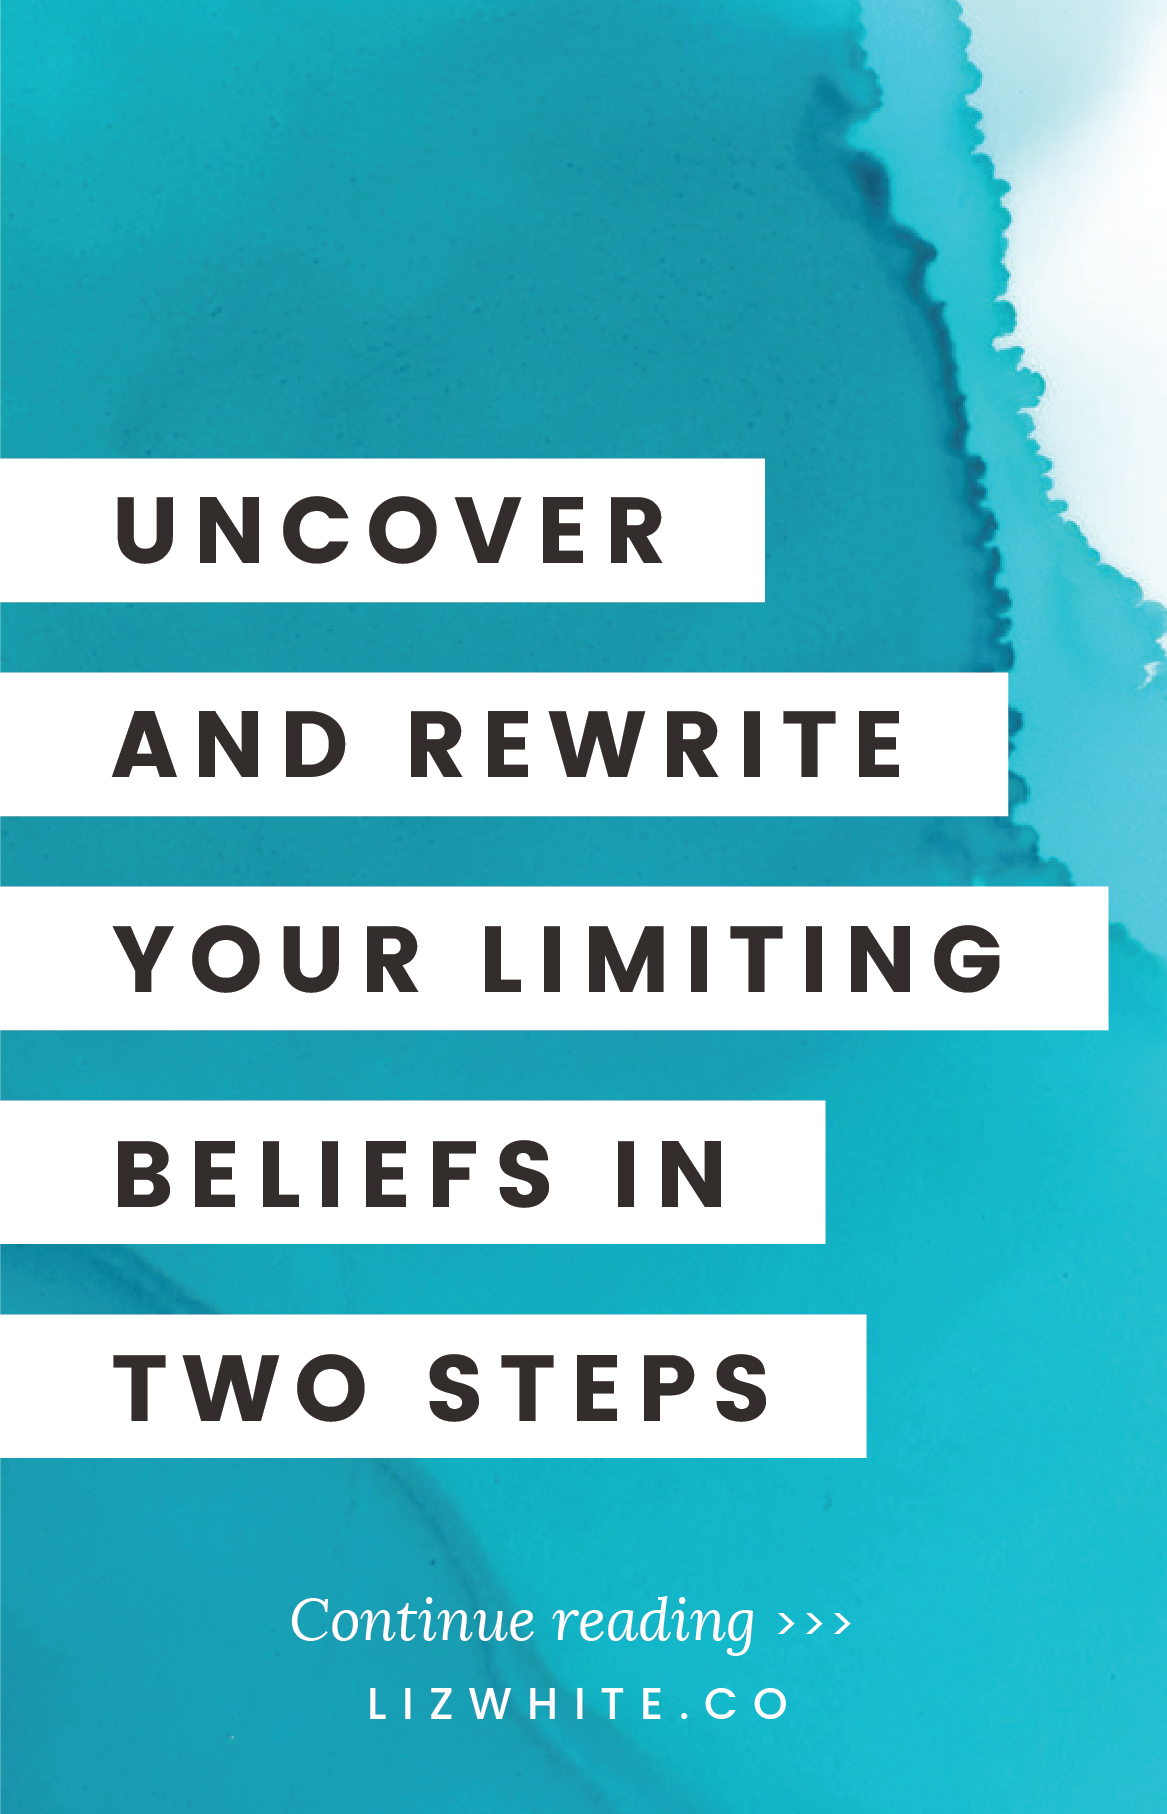 How to Take Back Your Power From Limiting Beliefs | Liz White | #power #limitingbeliefs #moneymakingmaven #creativepreneur #intuitivebusiness | Going through your limiting belief journey of rewriting your stories, working through fears, and figuring out where these crazy thought patterns and beliefs systems have come from is hard.